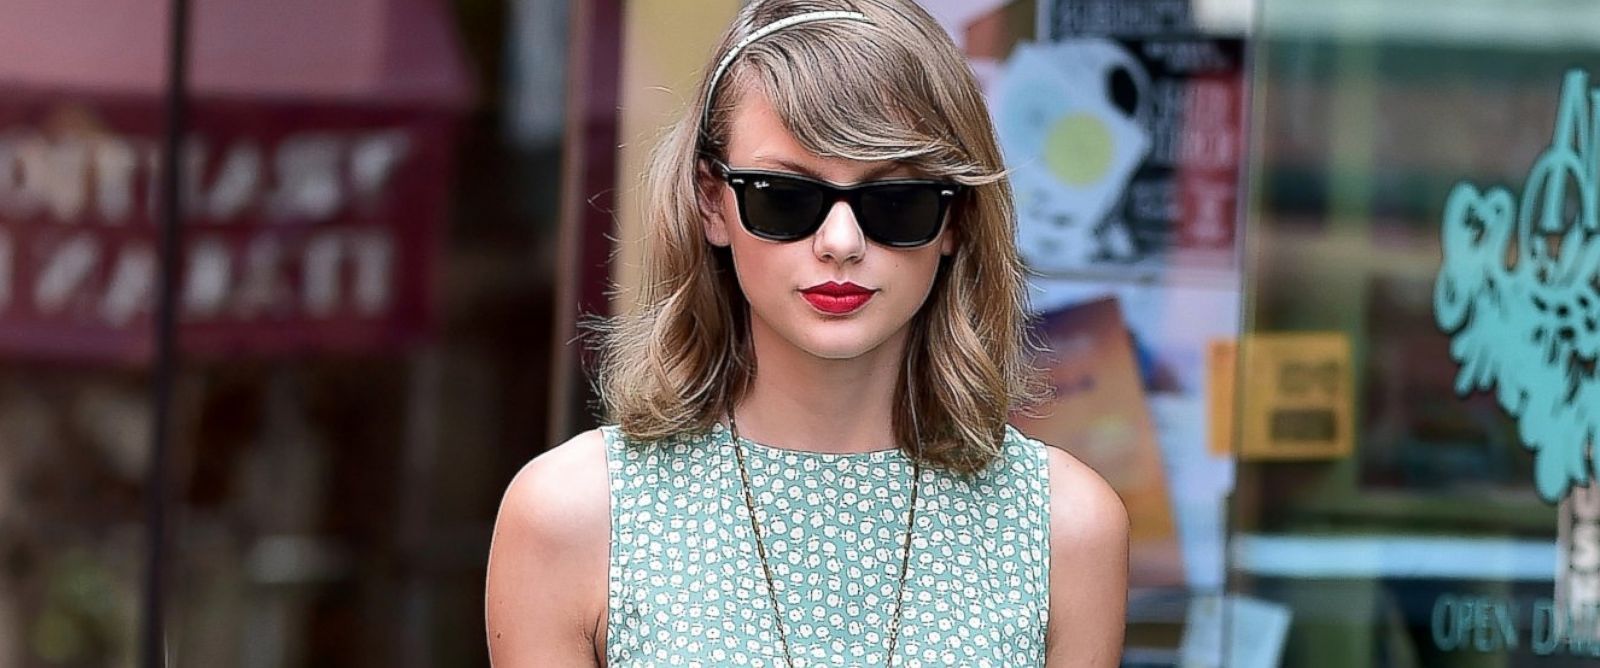 PHOTO: Taylor Swift is seen in the East Village, July 22, 2014, in New York City.